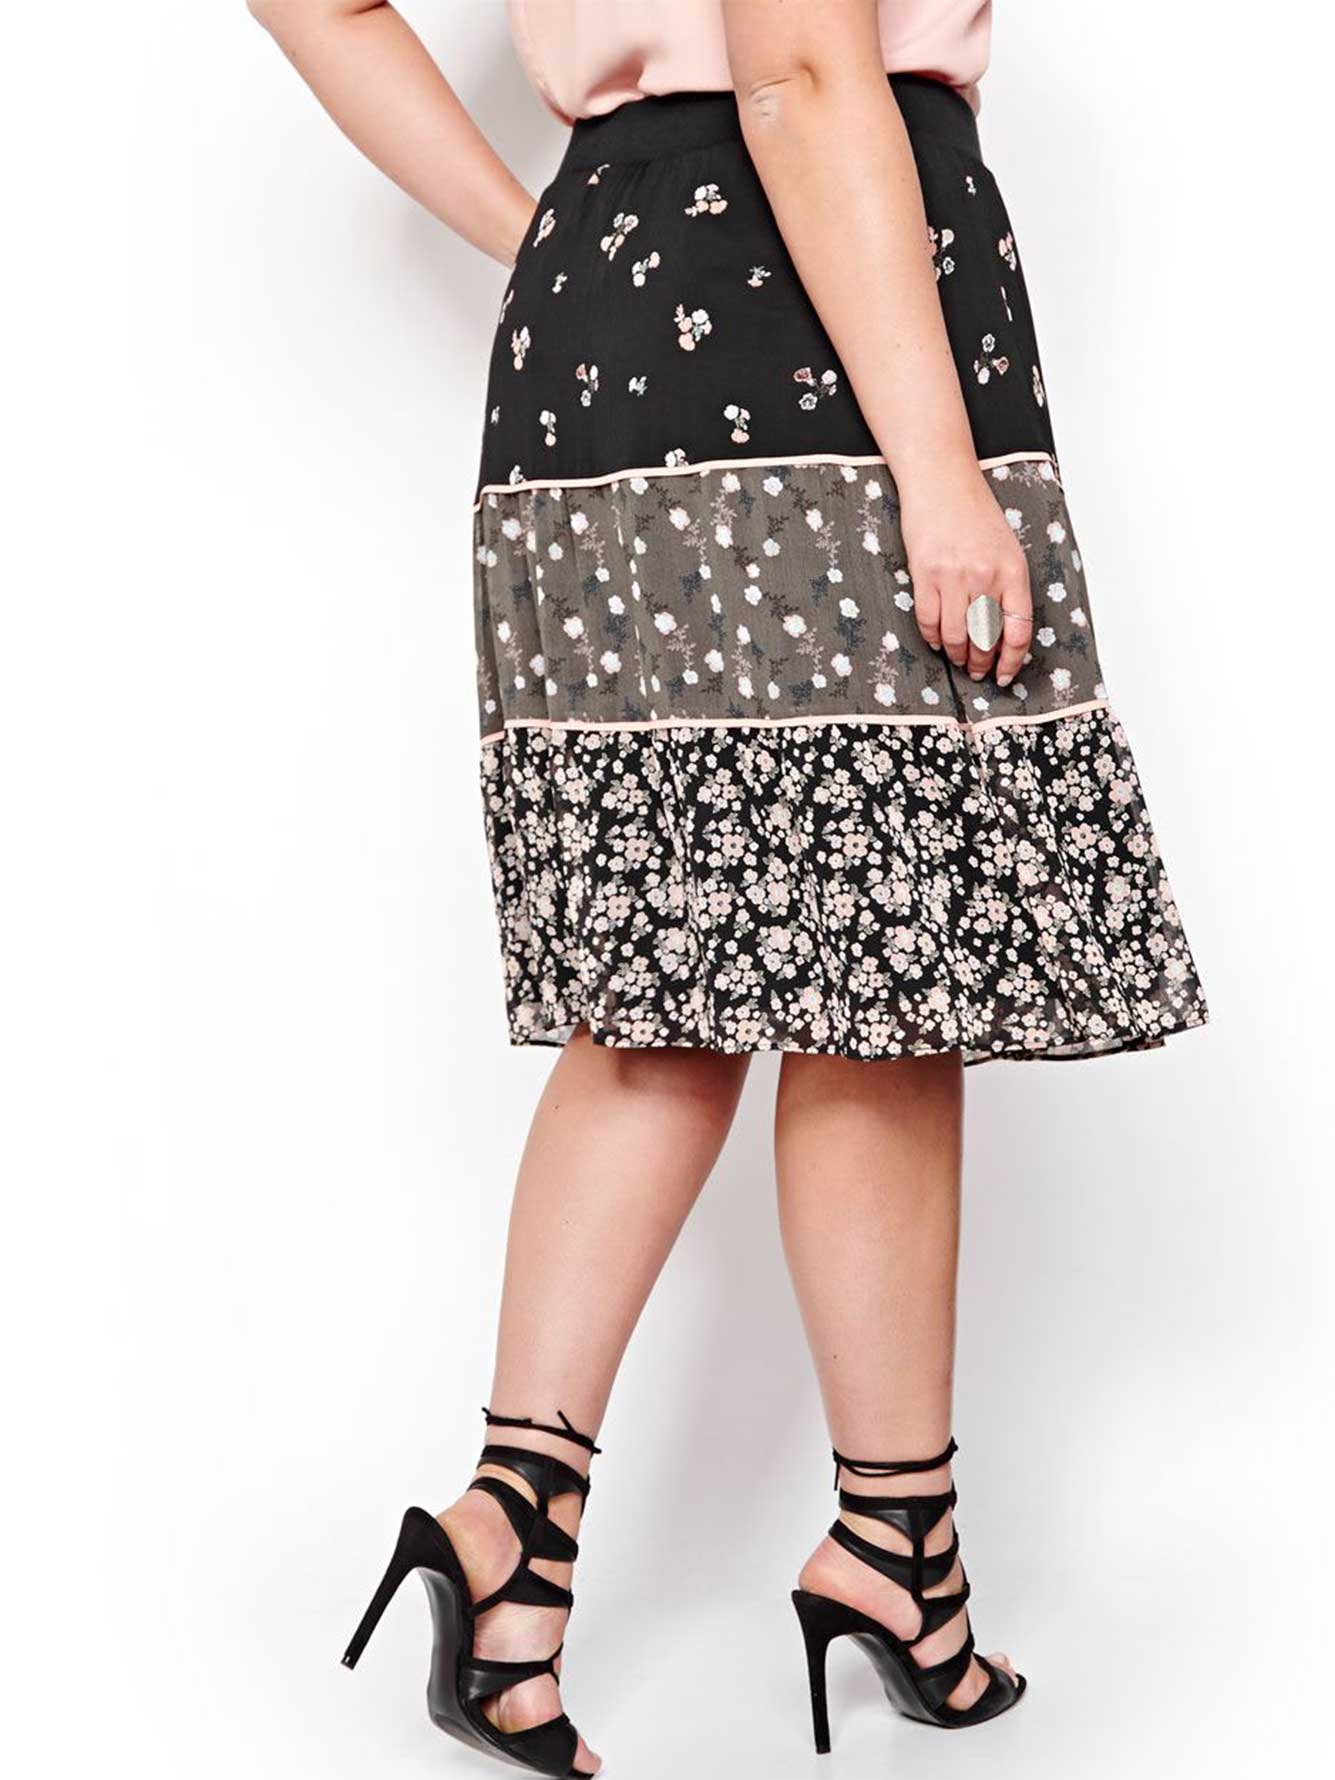 L&L Three-Tiered Printed Skirt